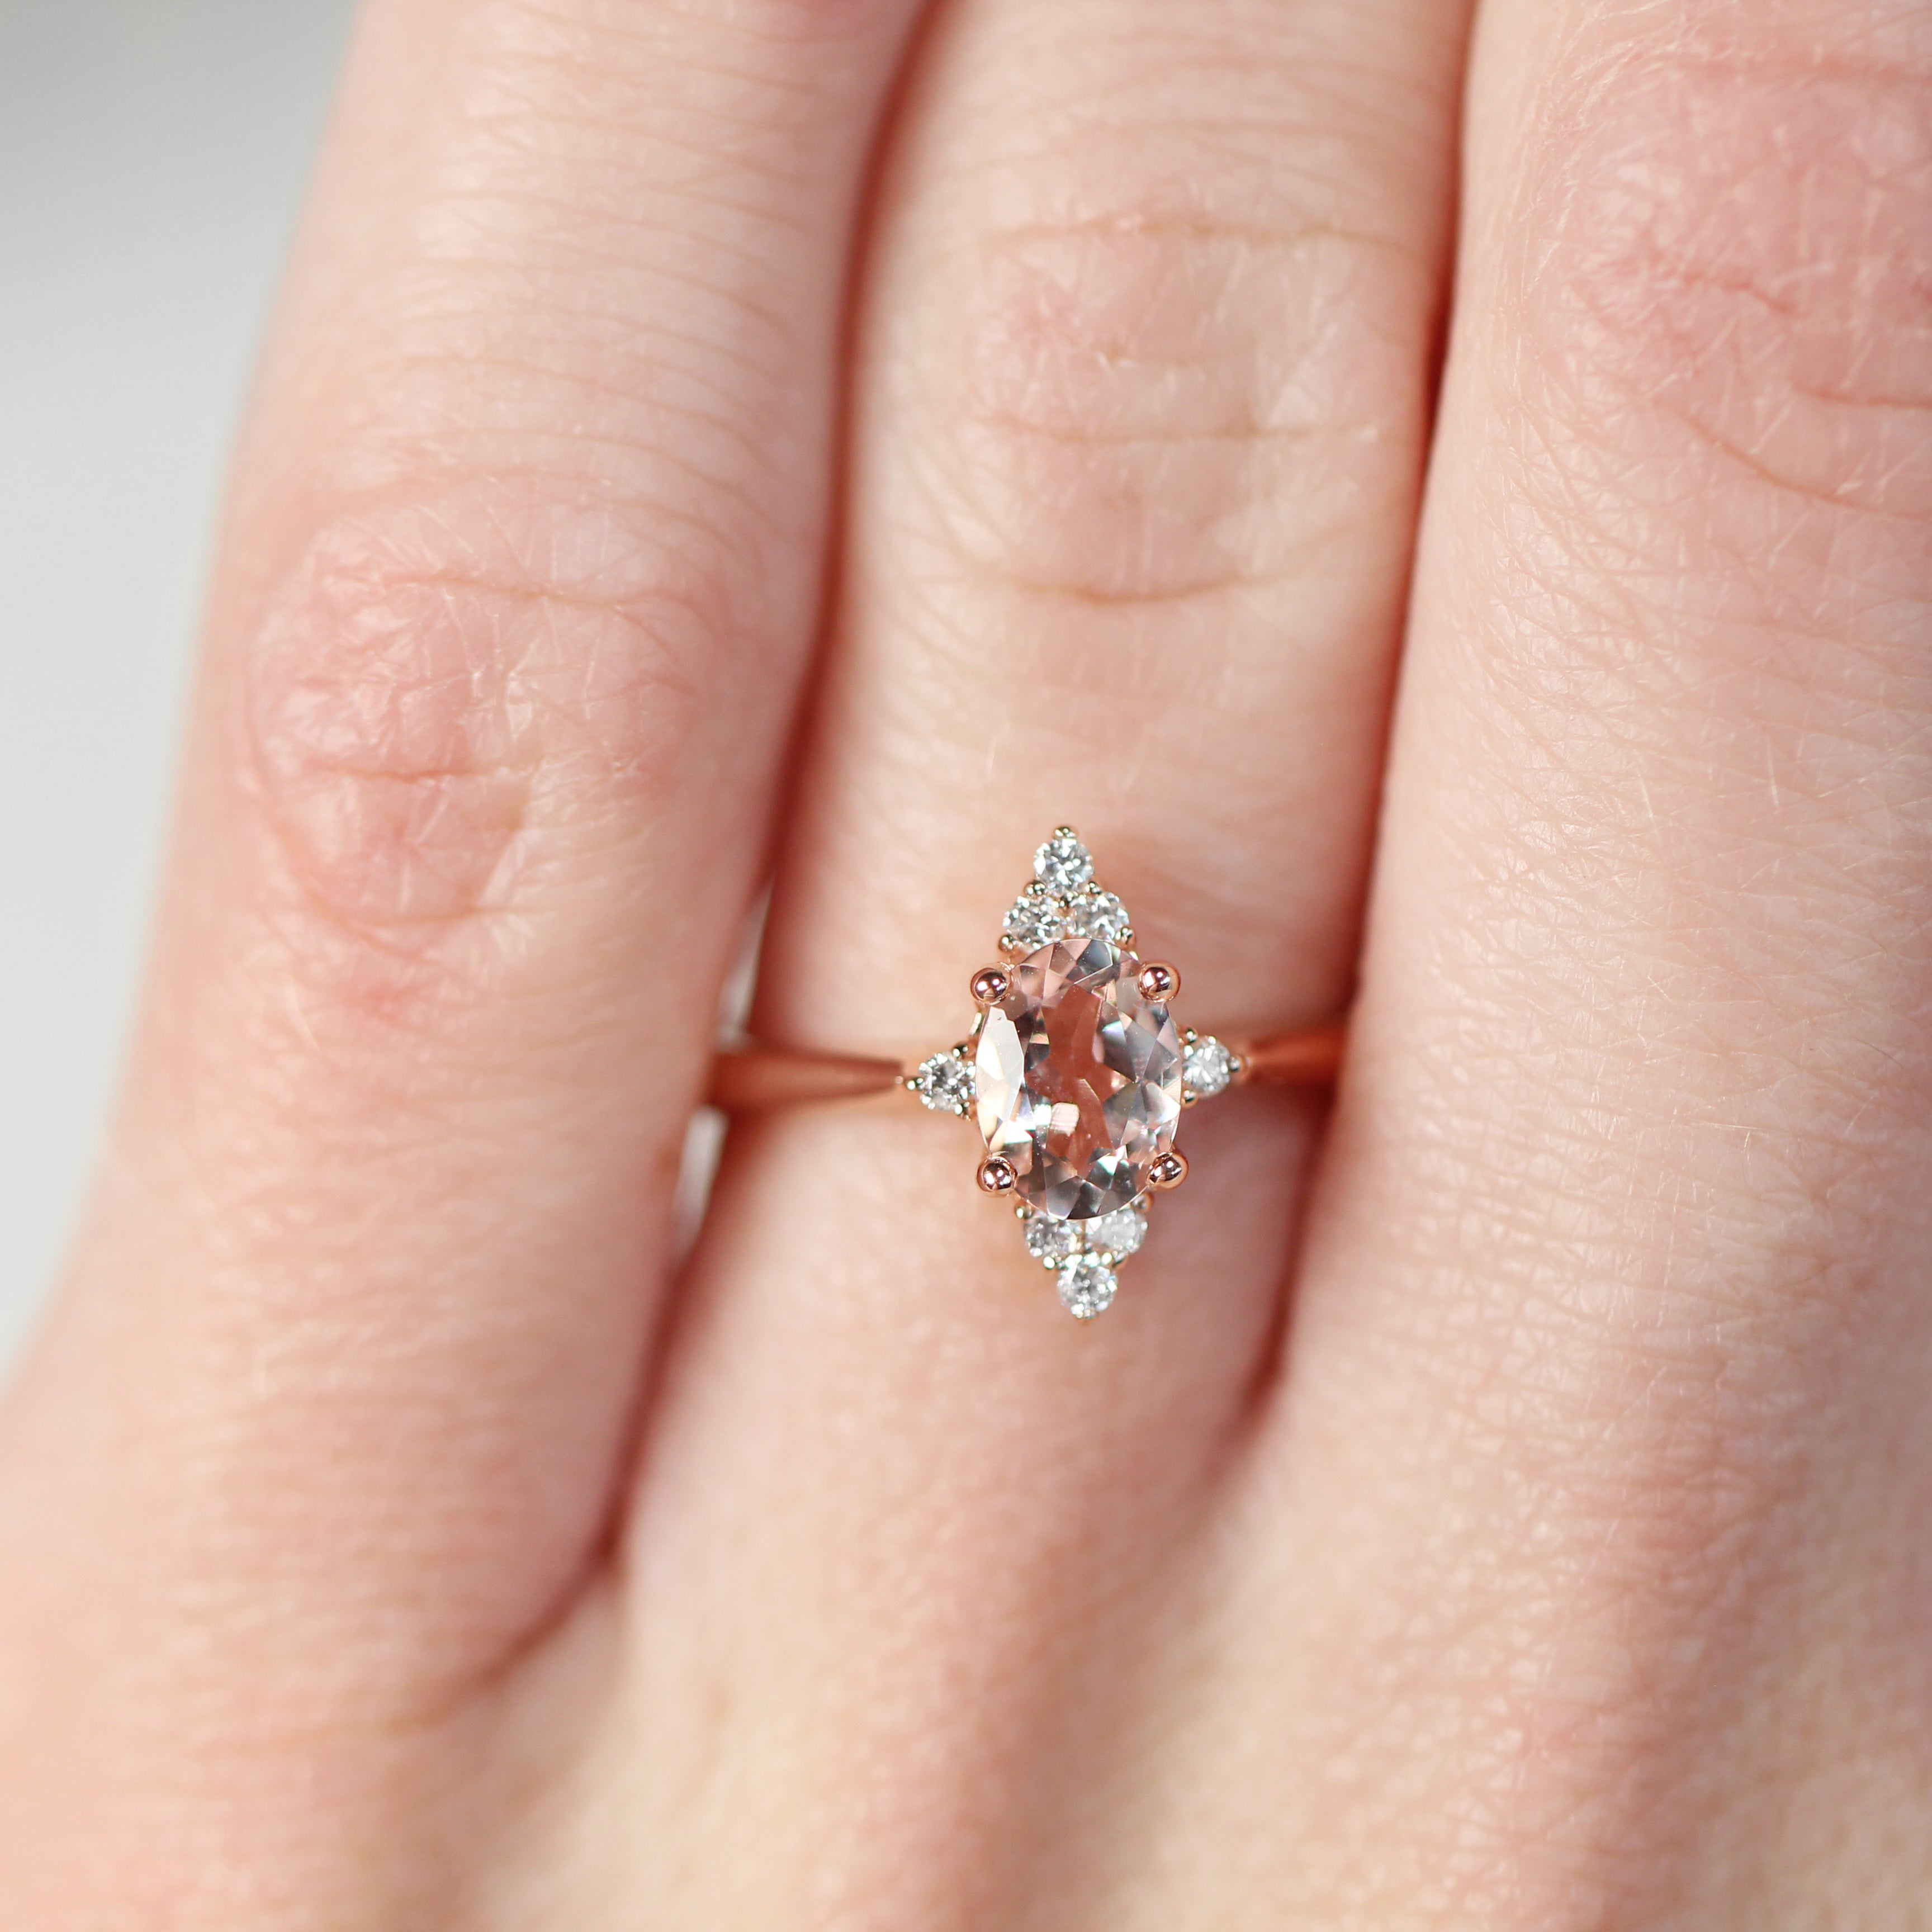 Emery Ring with 1.00 Carat Oval Morganite in 10k Rose Gold - Ready to Size and Ship - Salt & Pepper Celestial Diamond Engagement Rings and Wedding Bands  by Midwinter Co.